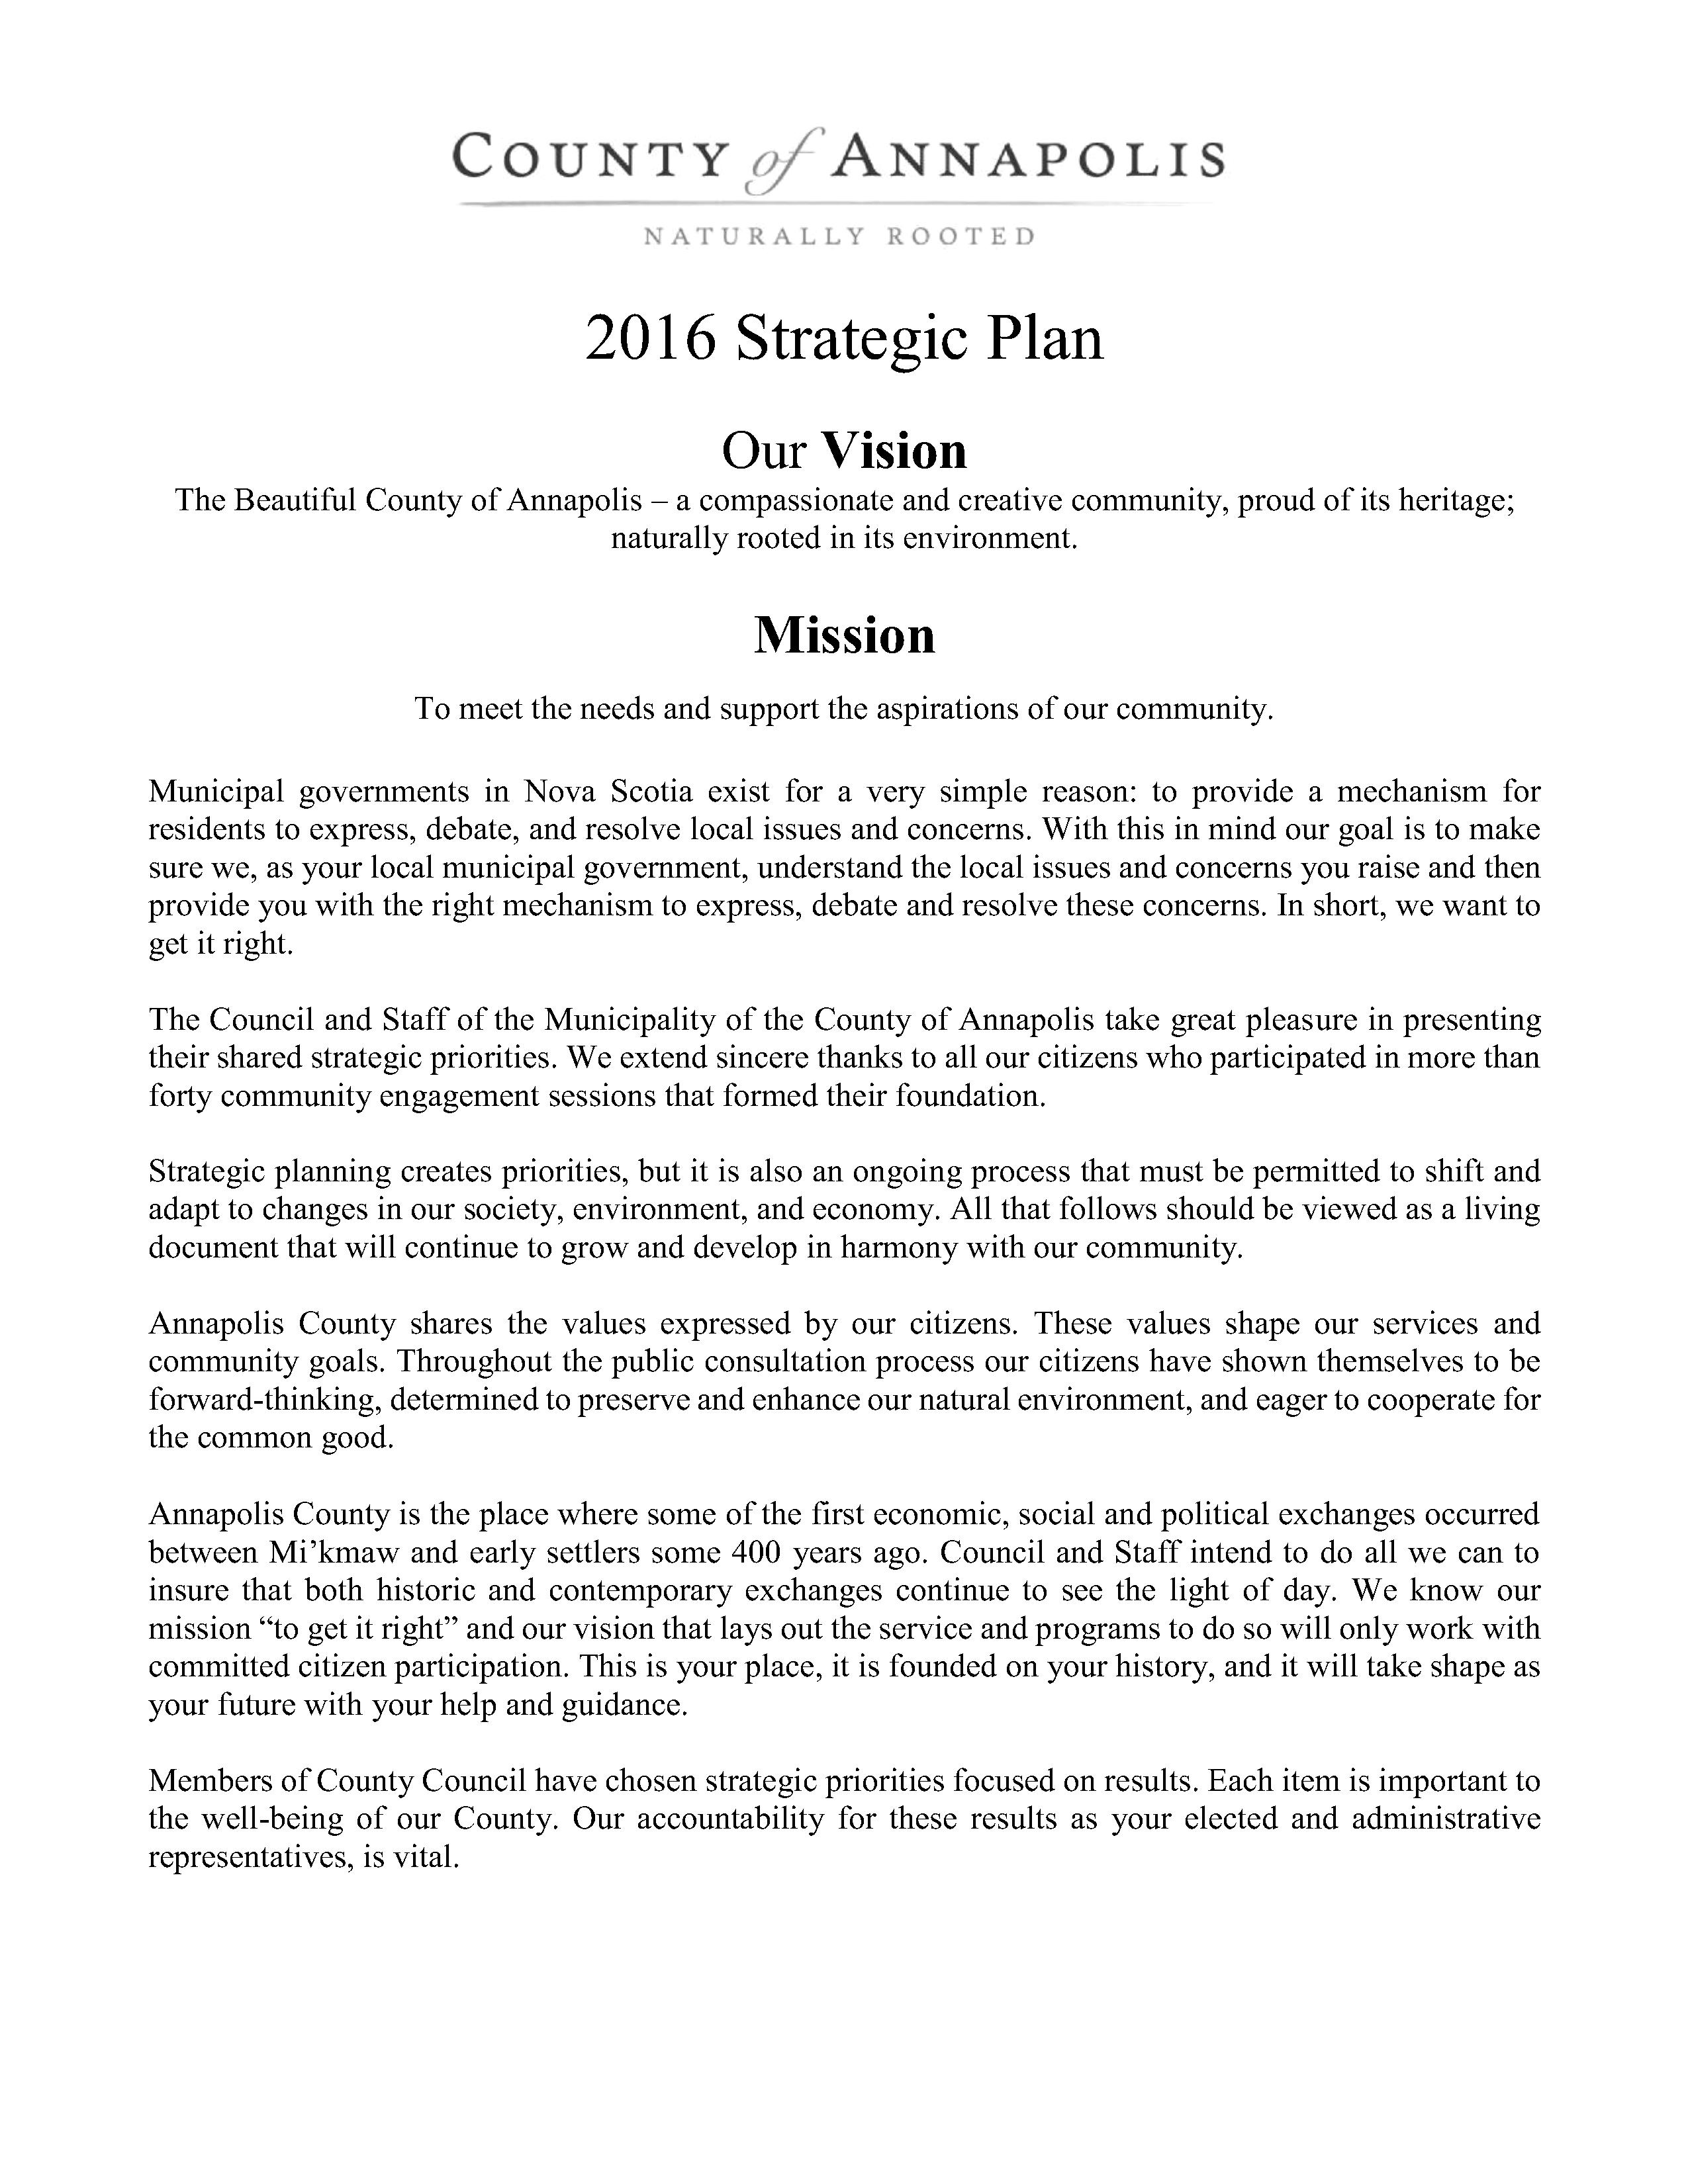 2016 Strategic Plan 1